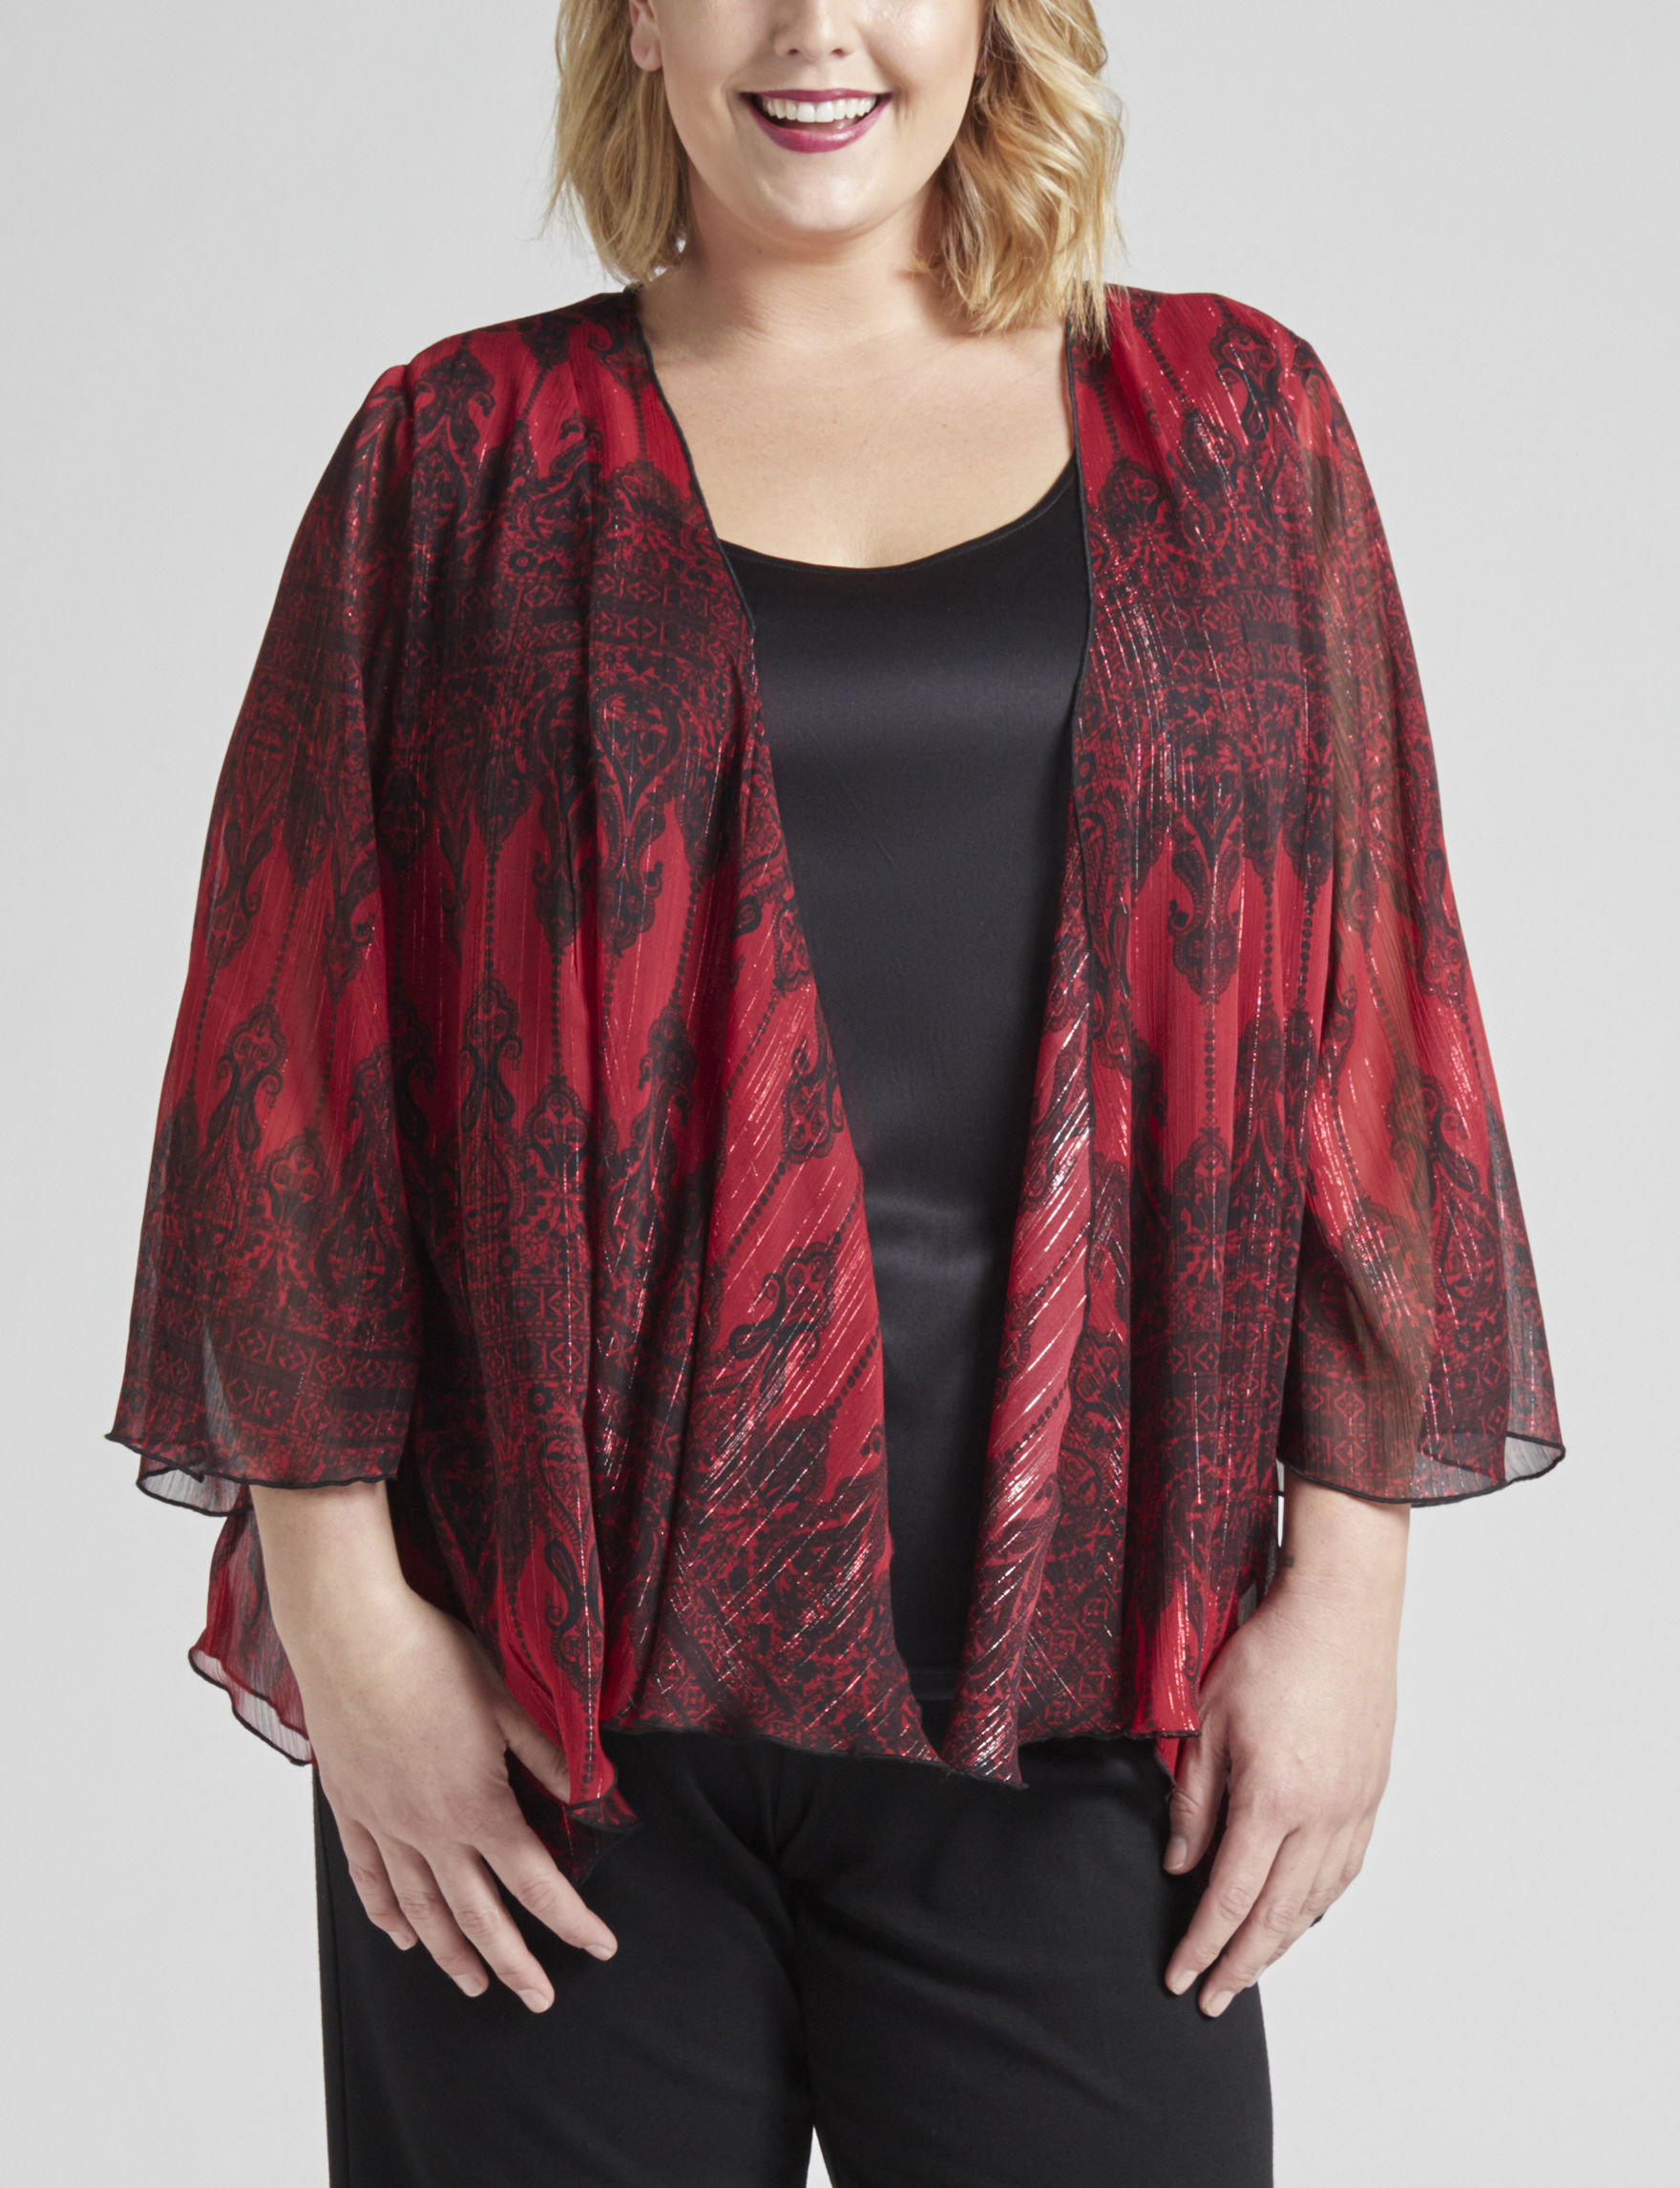 Sara Michelle Red / Black Shirts & Blouses